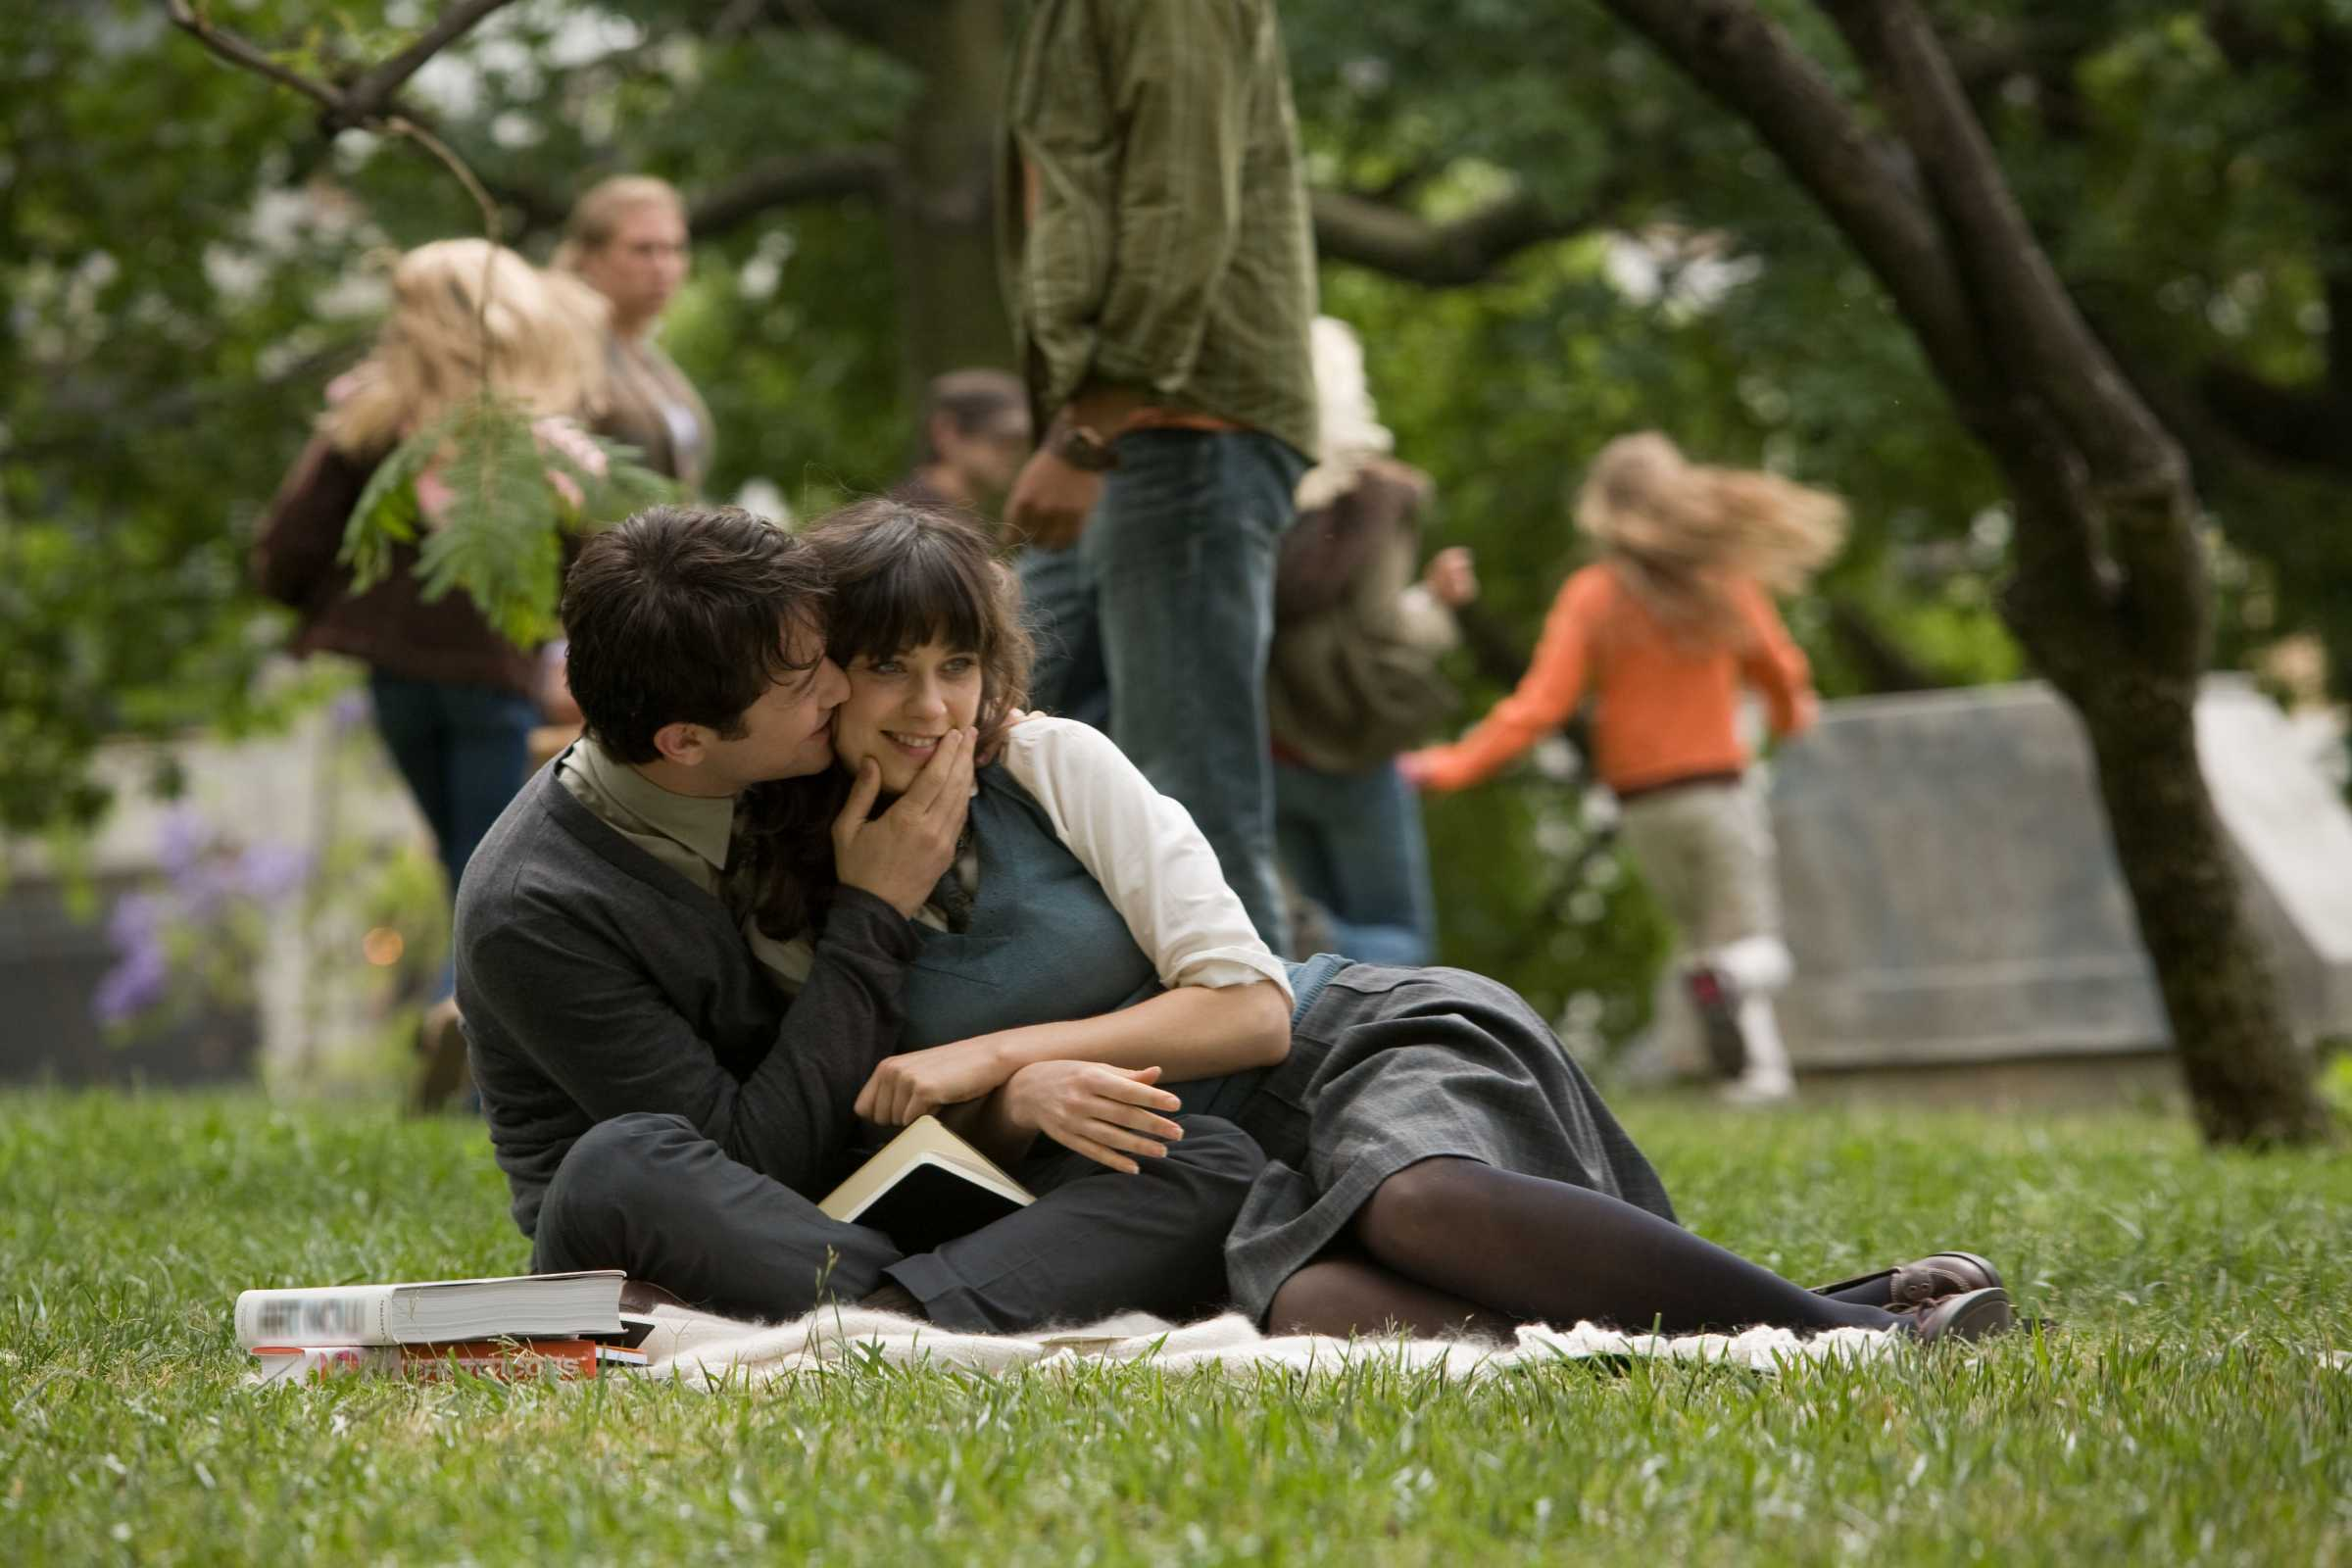 where to watch 500 days of summer